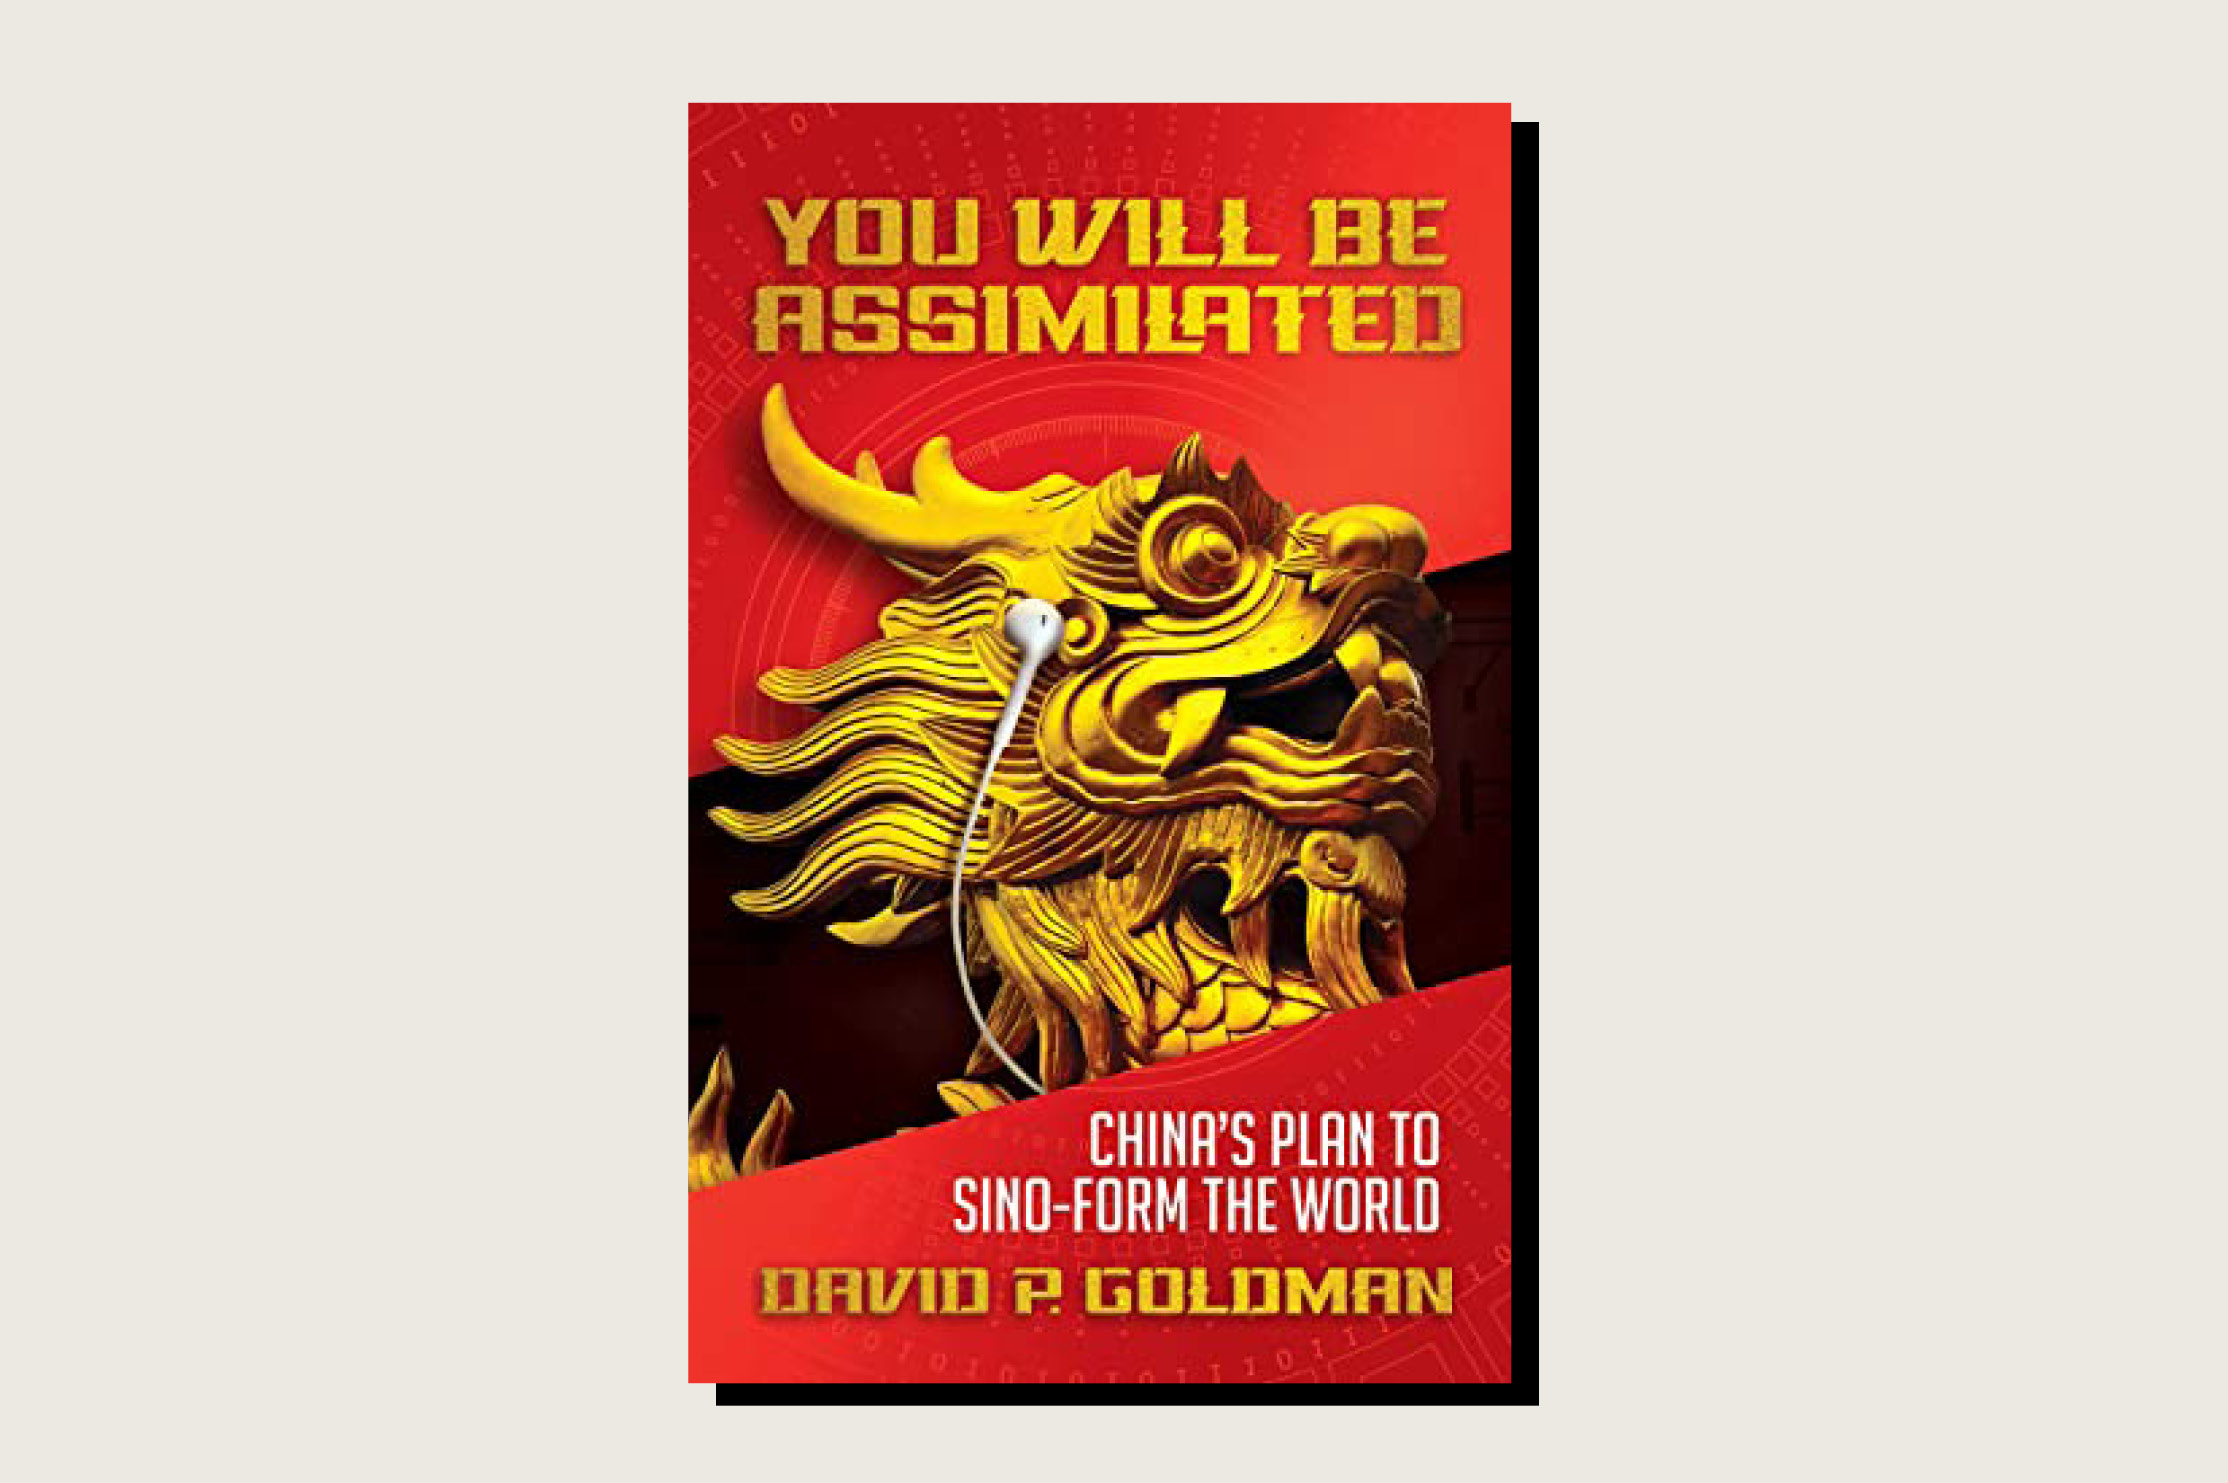 You Will Be Assimilated: China's Plan to Sino-Form the World, David P. Goldman, Bombardier Books, 274 pp., , July 2020